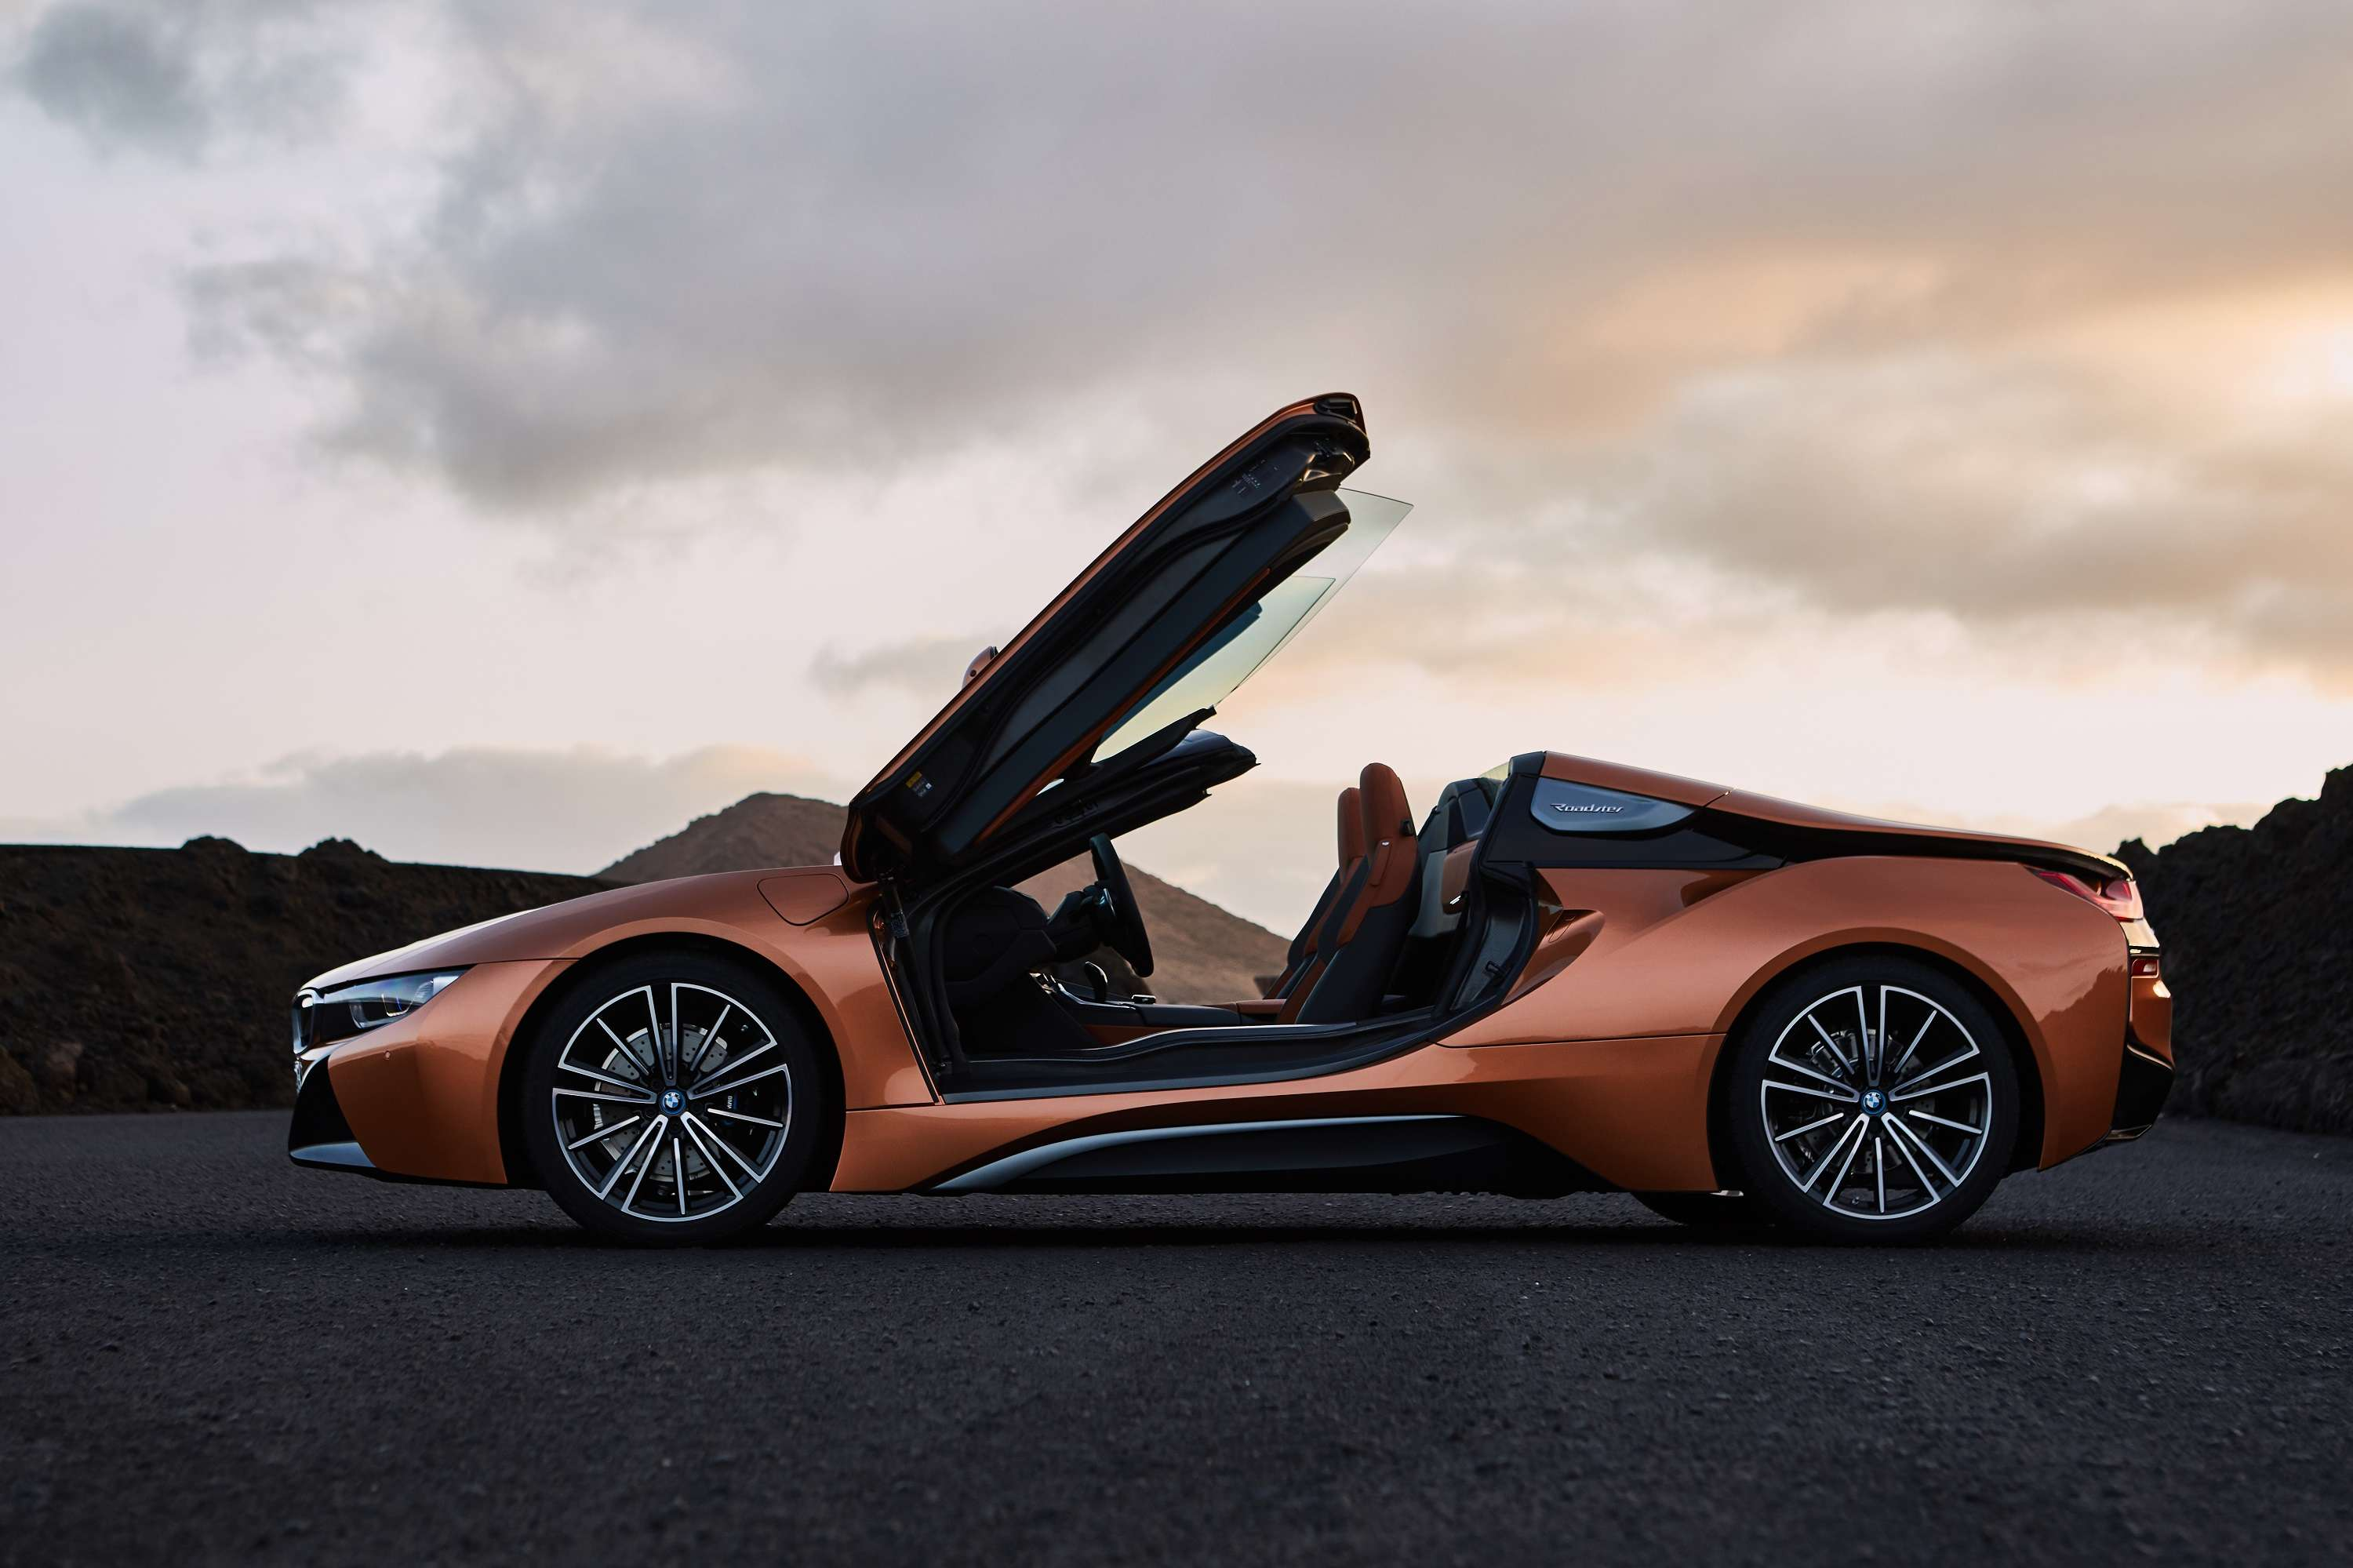 roadster BMW Group to launch three new cars two motorcycles at